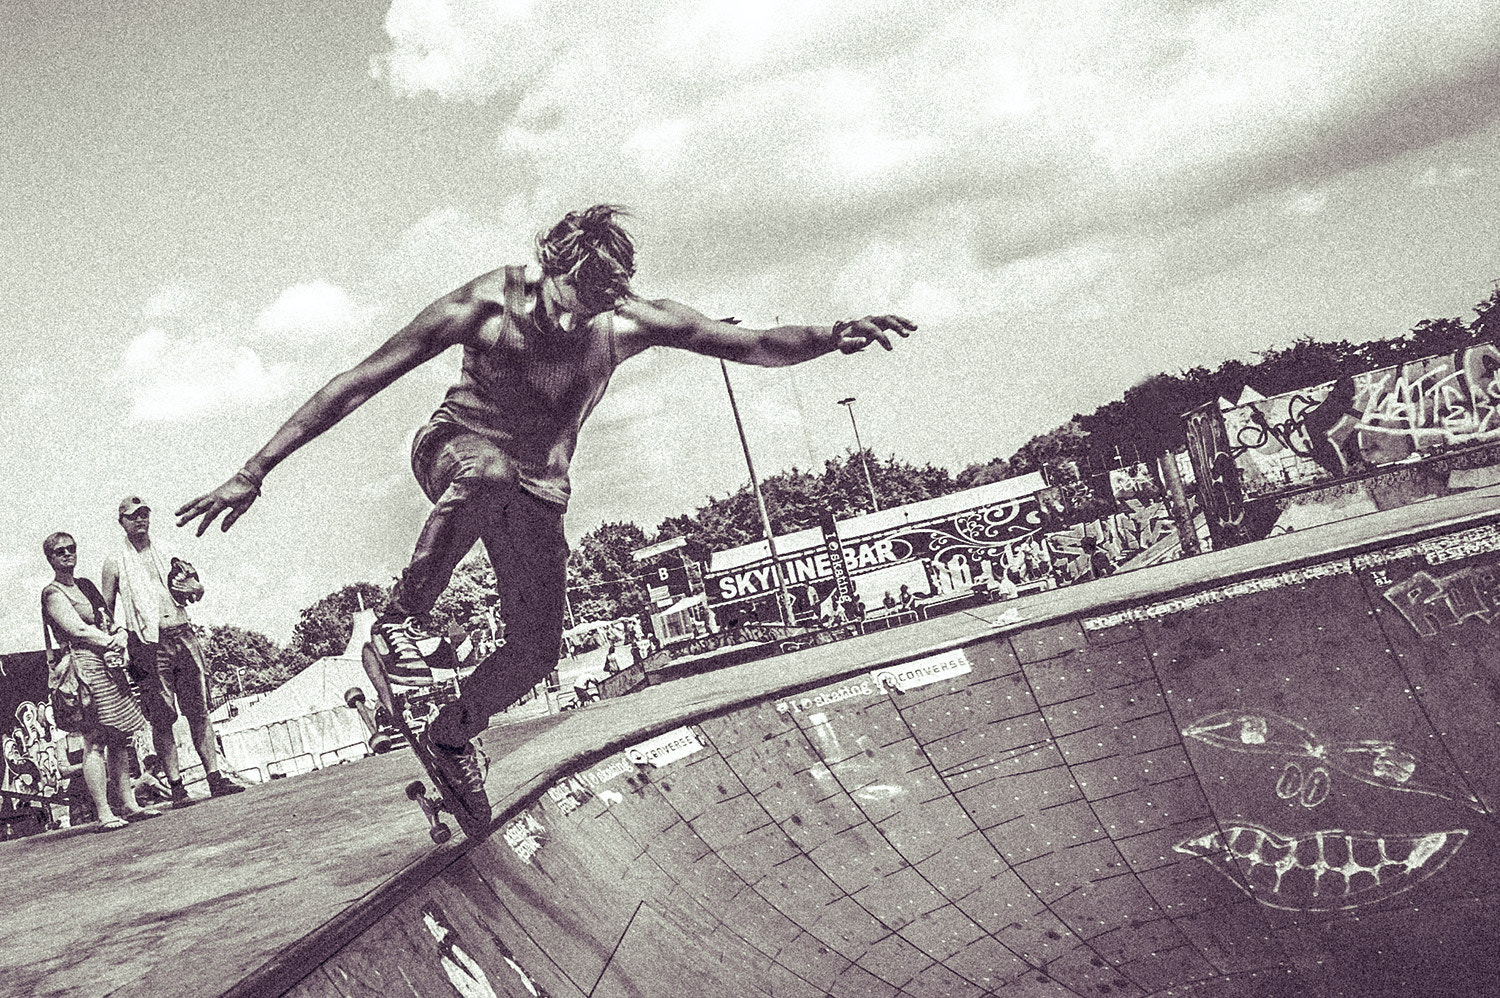 Photograph Skate Or Die by Michael Bang on 500px